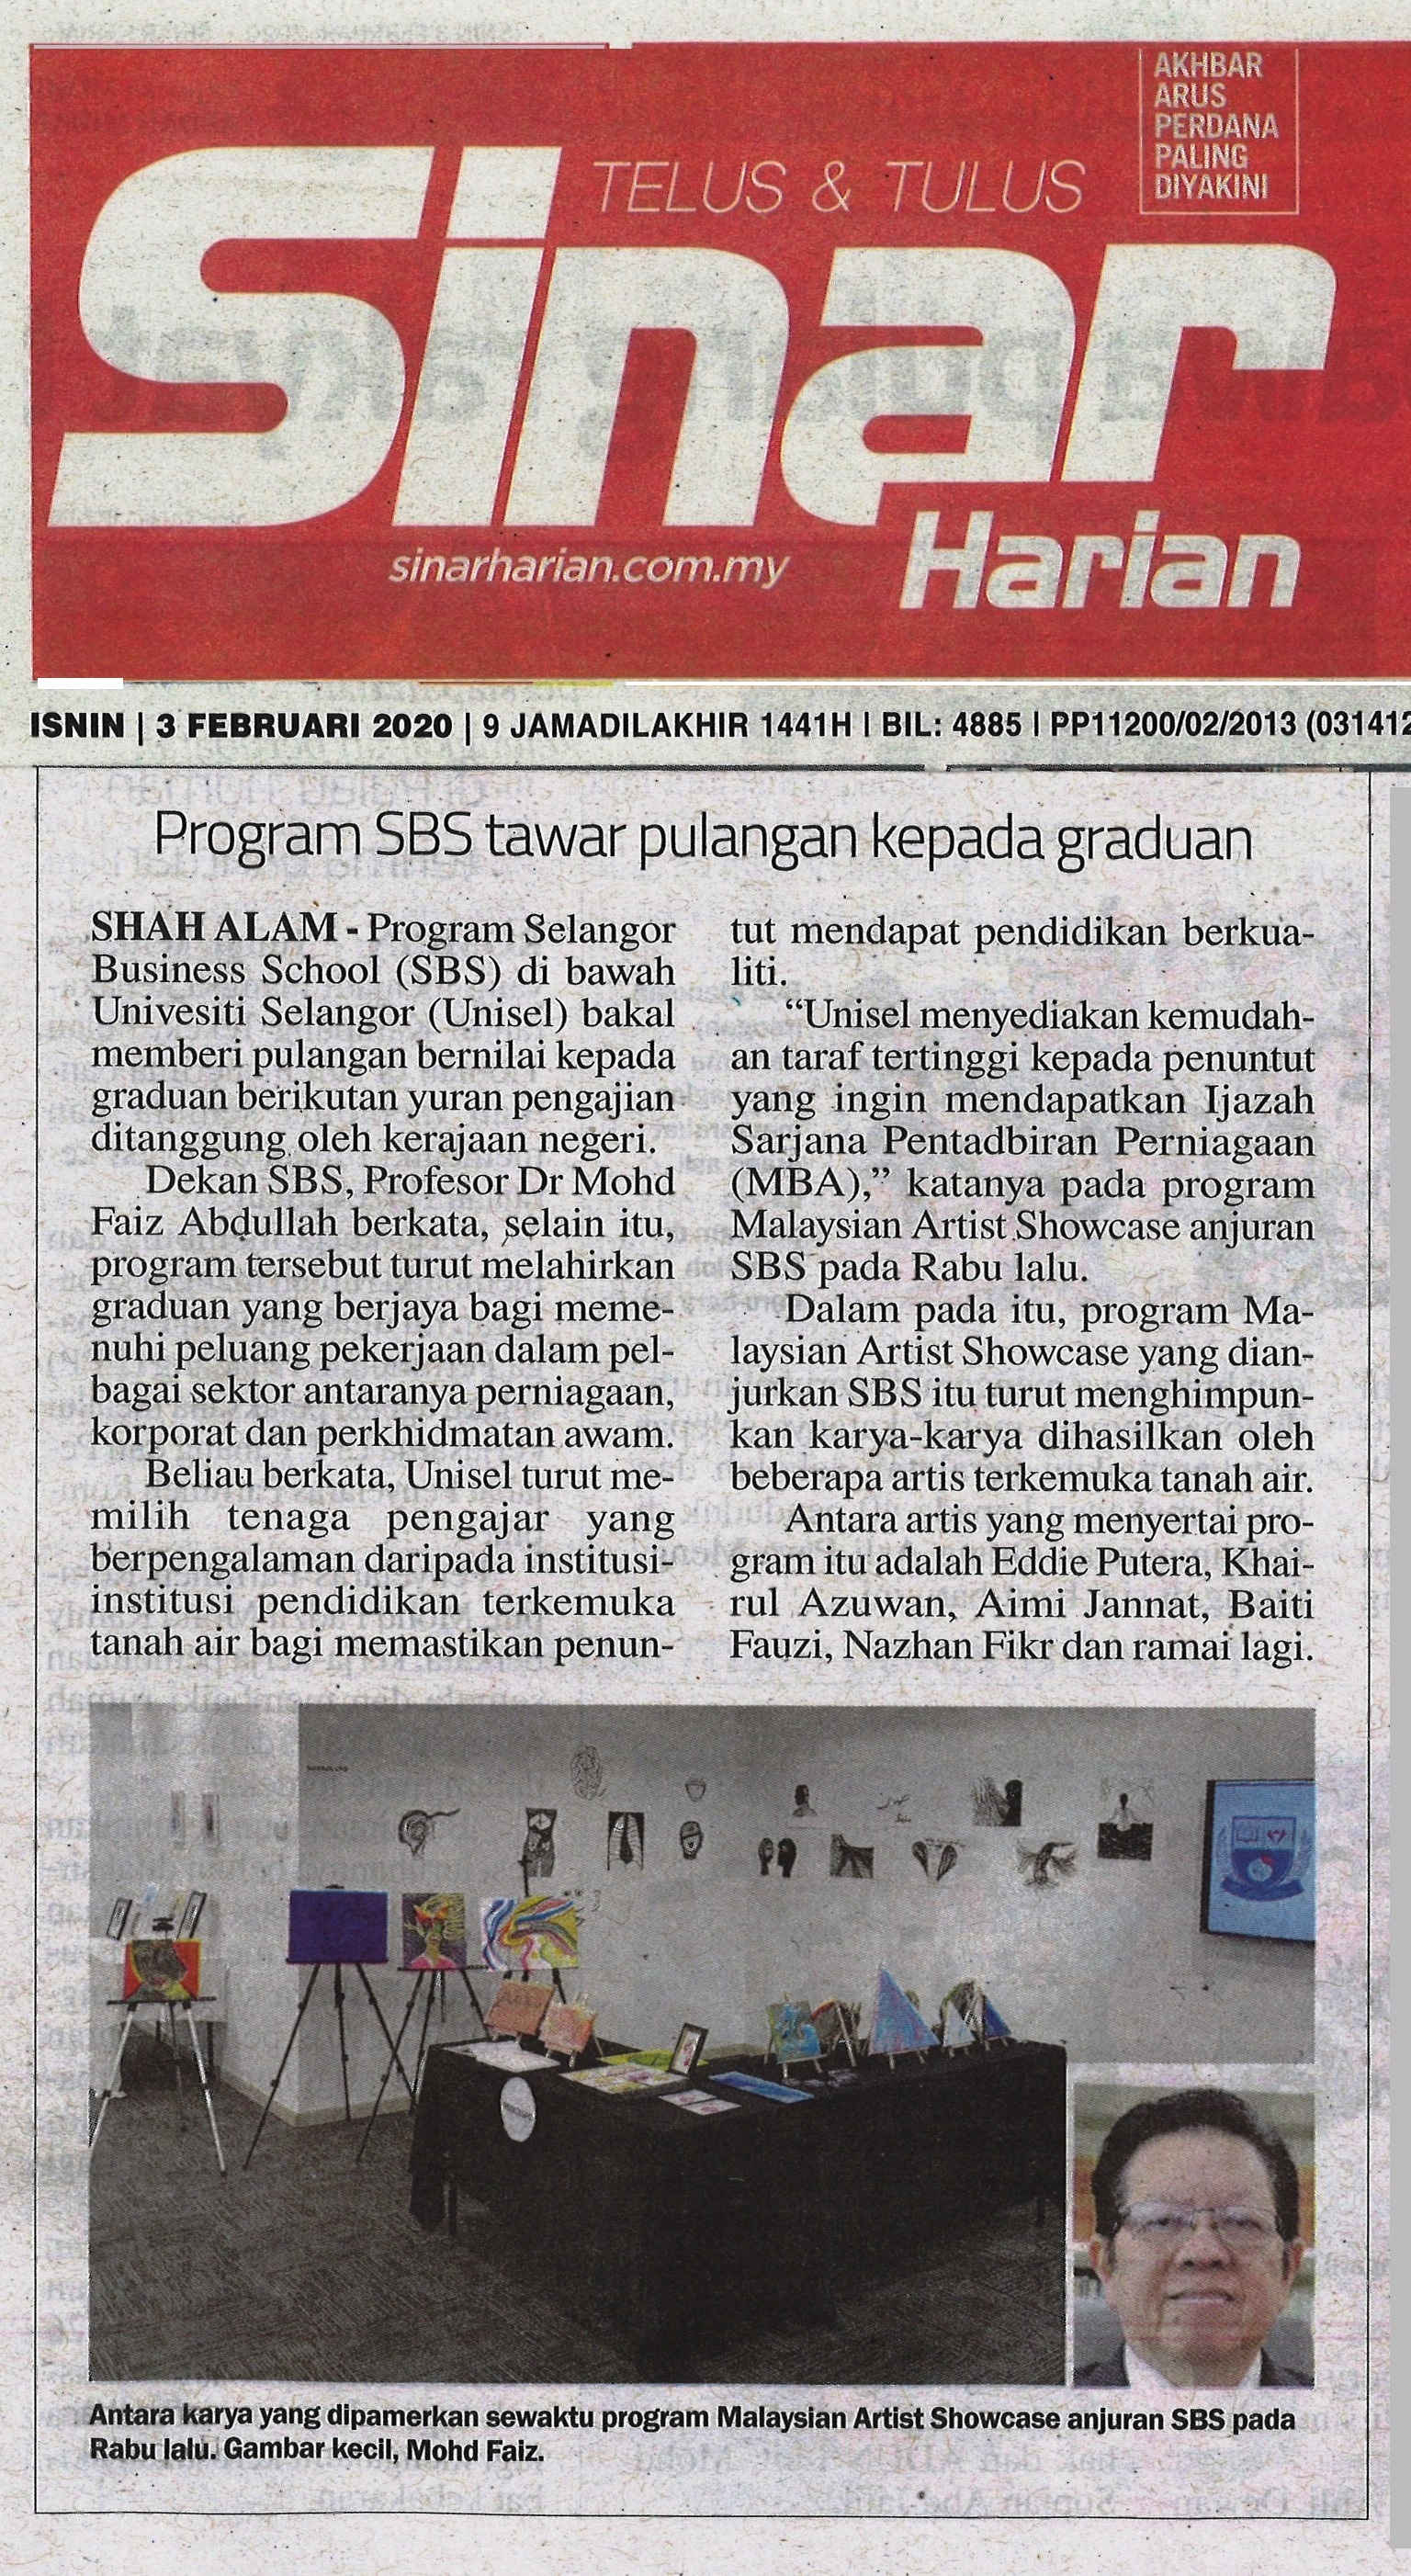 Sinar Harian 3 Feb 2010